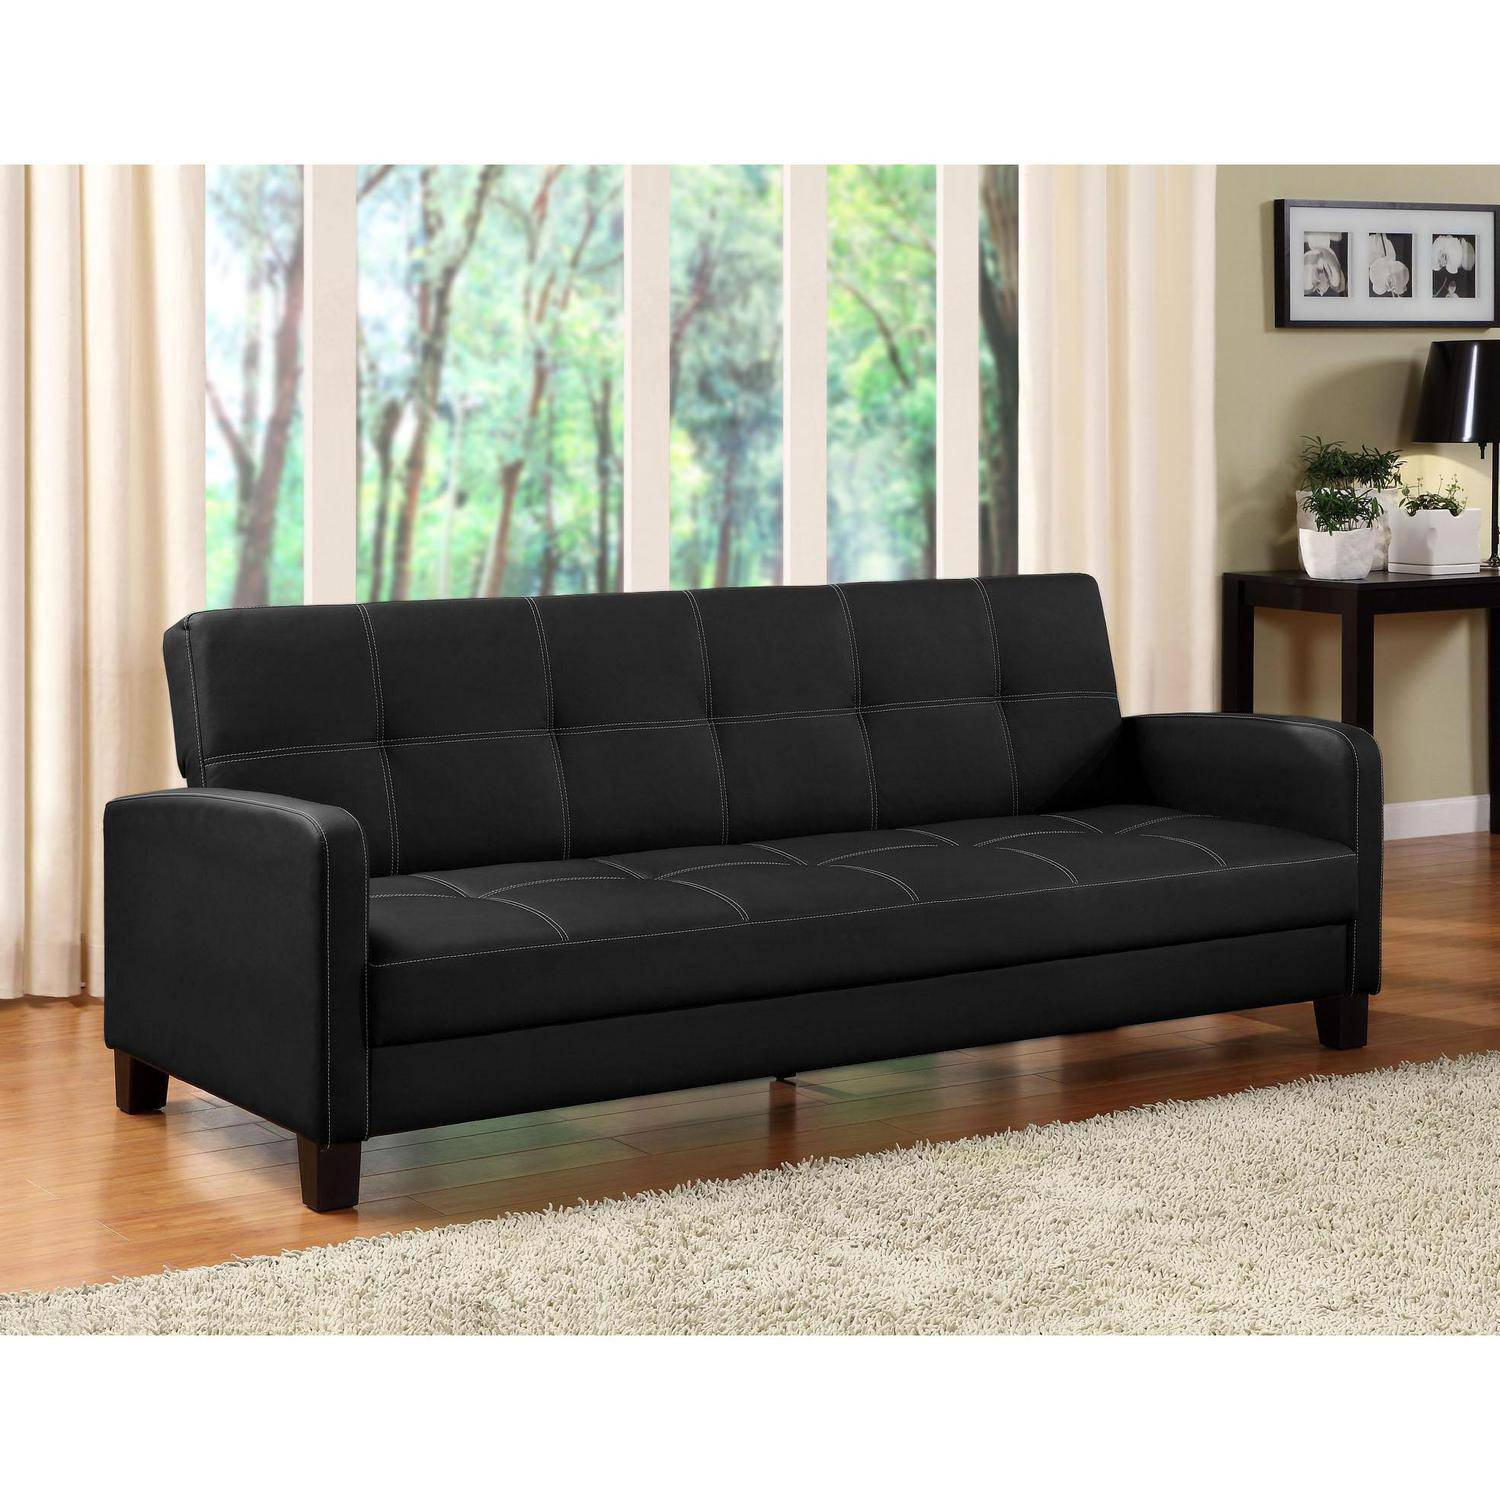 Twin Sleeper Sofa | Twin Sleeper Chair | Loveseat Sleeper